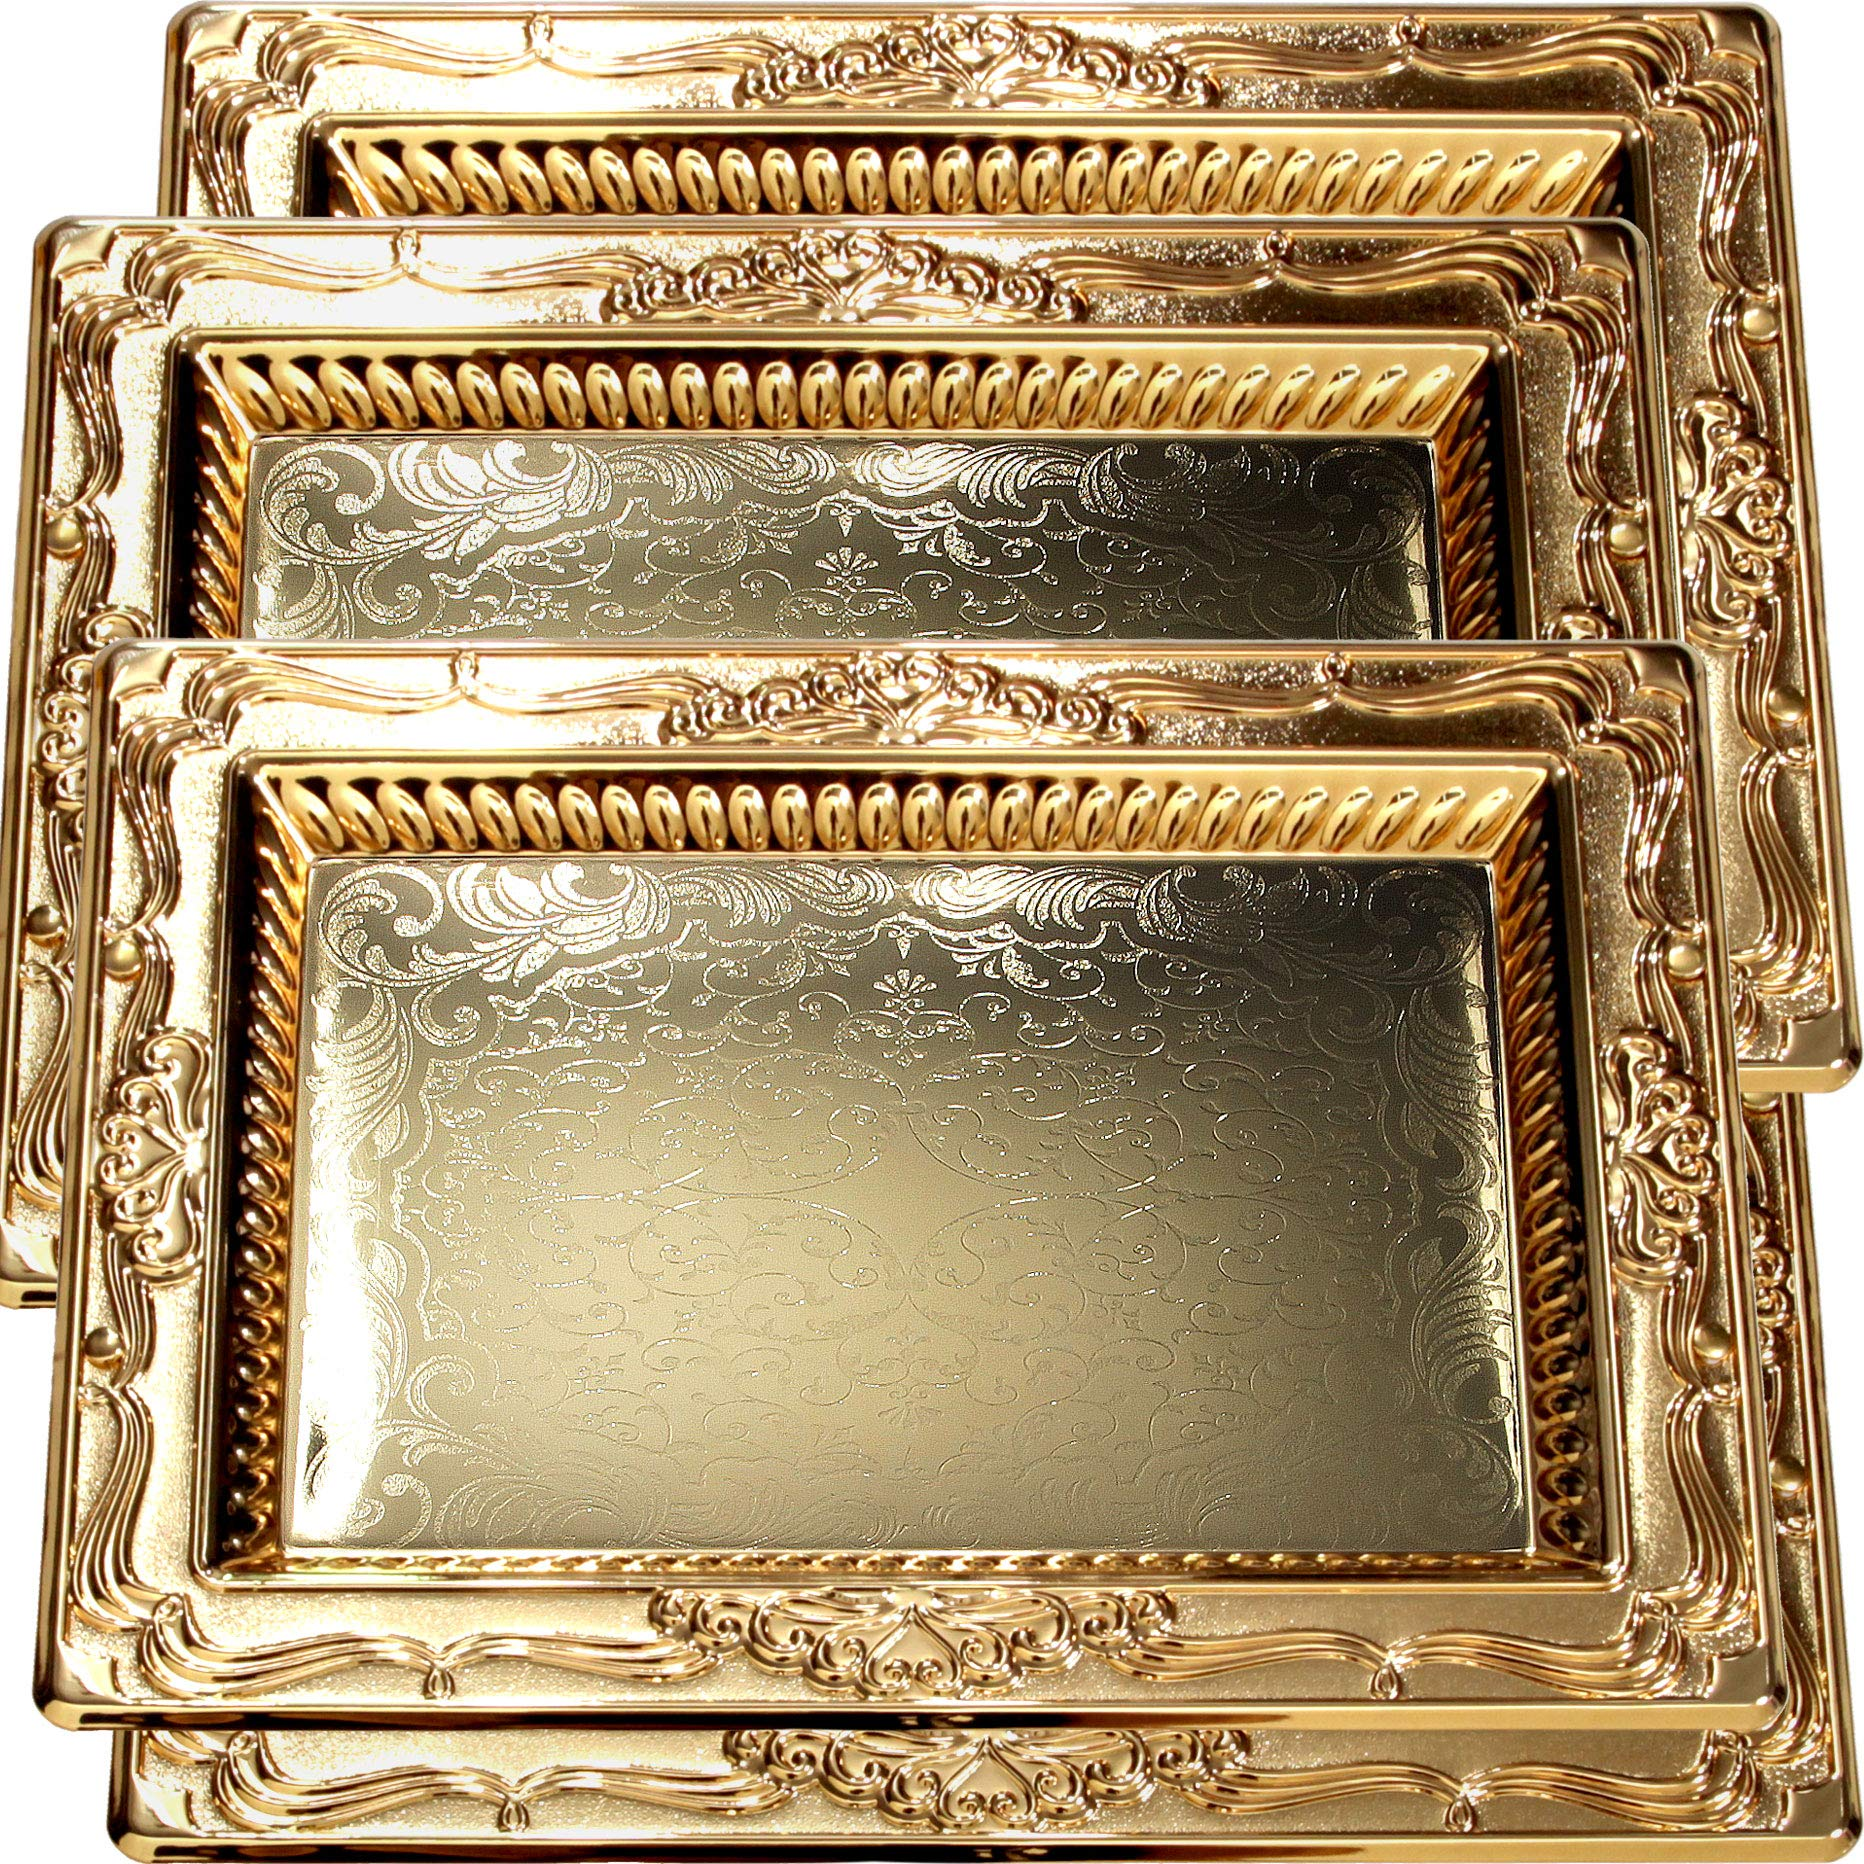 Maro Megastore (Pack of 4) 18.5-Inch x 13.8-Inch Special Rectangular Iron Gold Plated Serving Tray Vintage Floral Edge Engraved Decorative Wedding Birthday Buffet Party Snack Platter 2486 M Tla-068